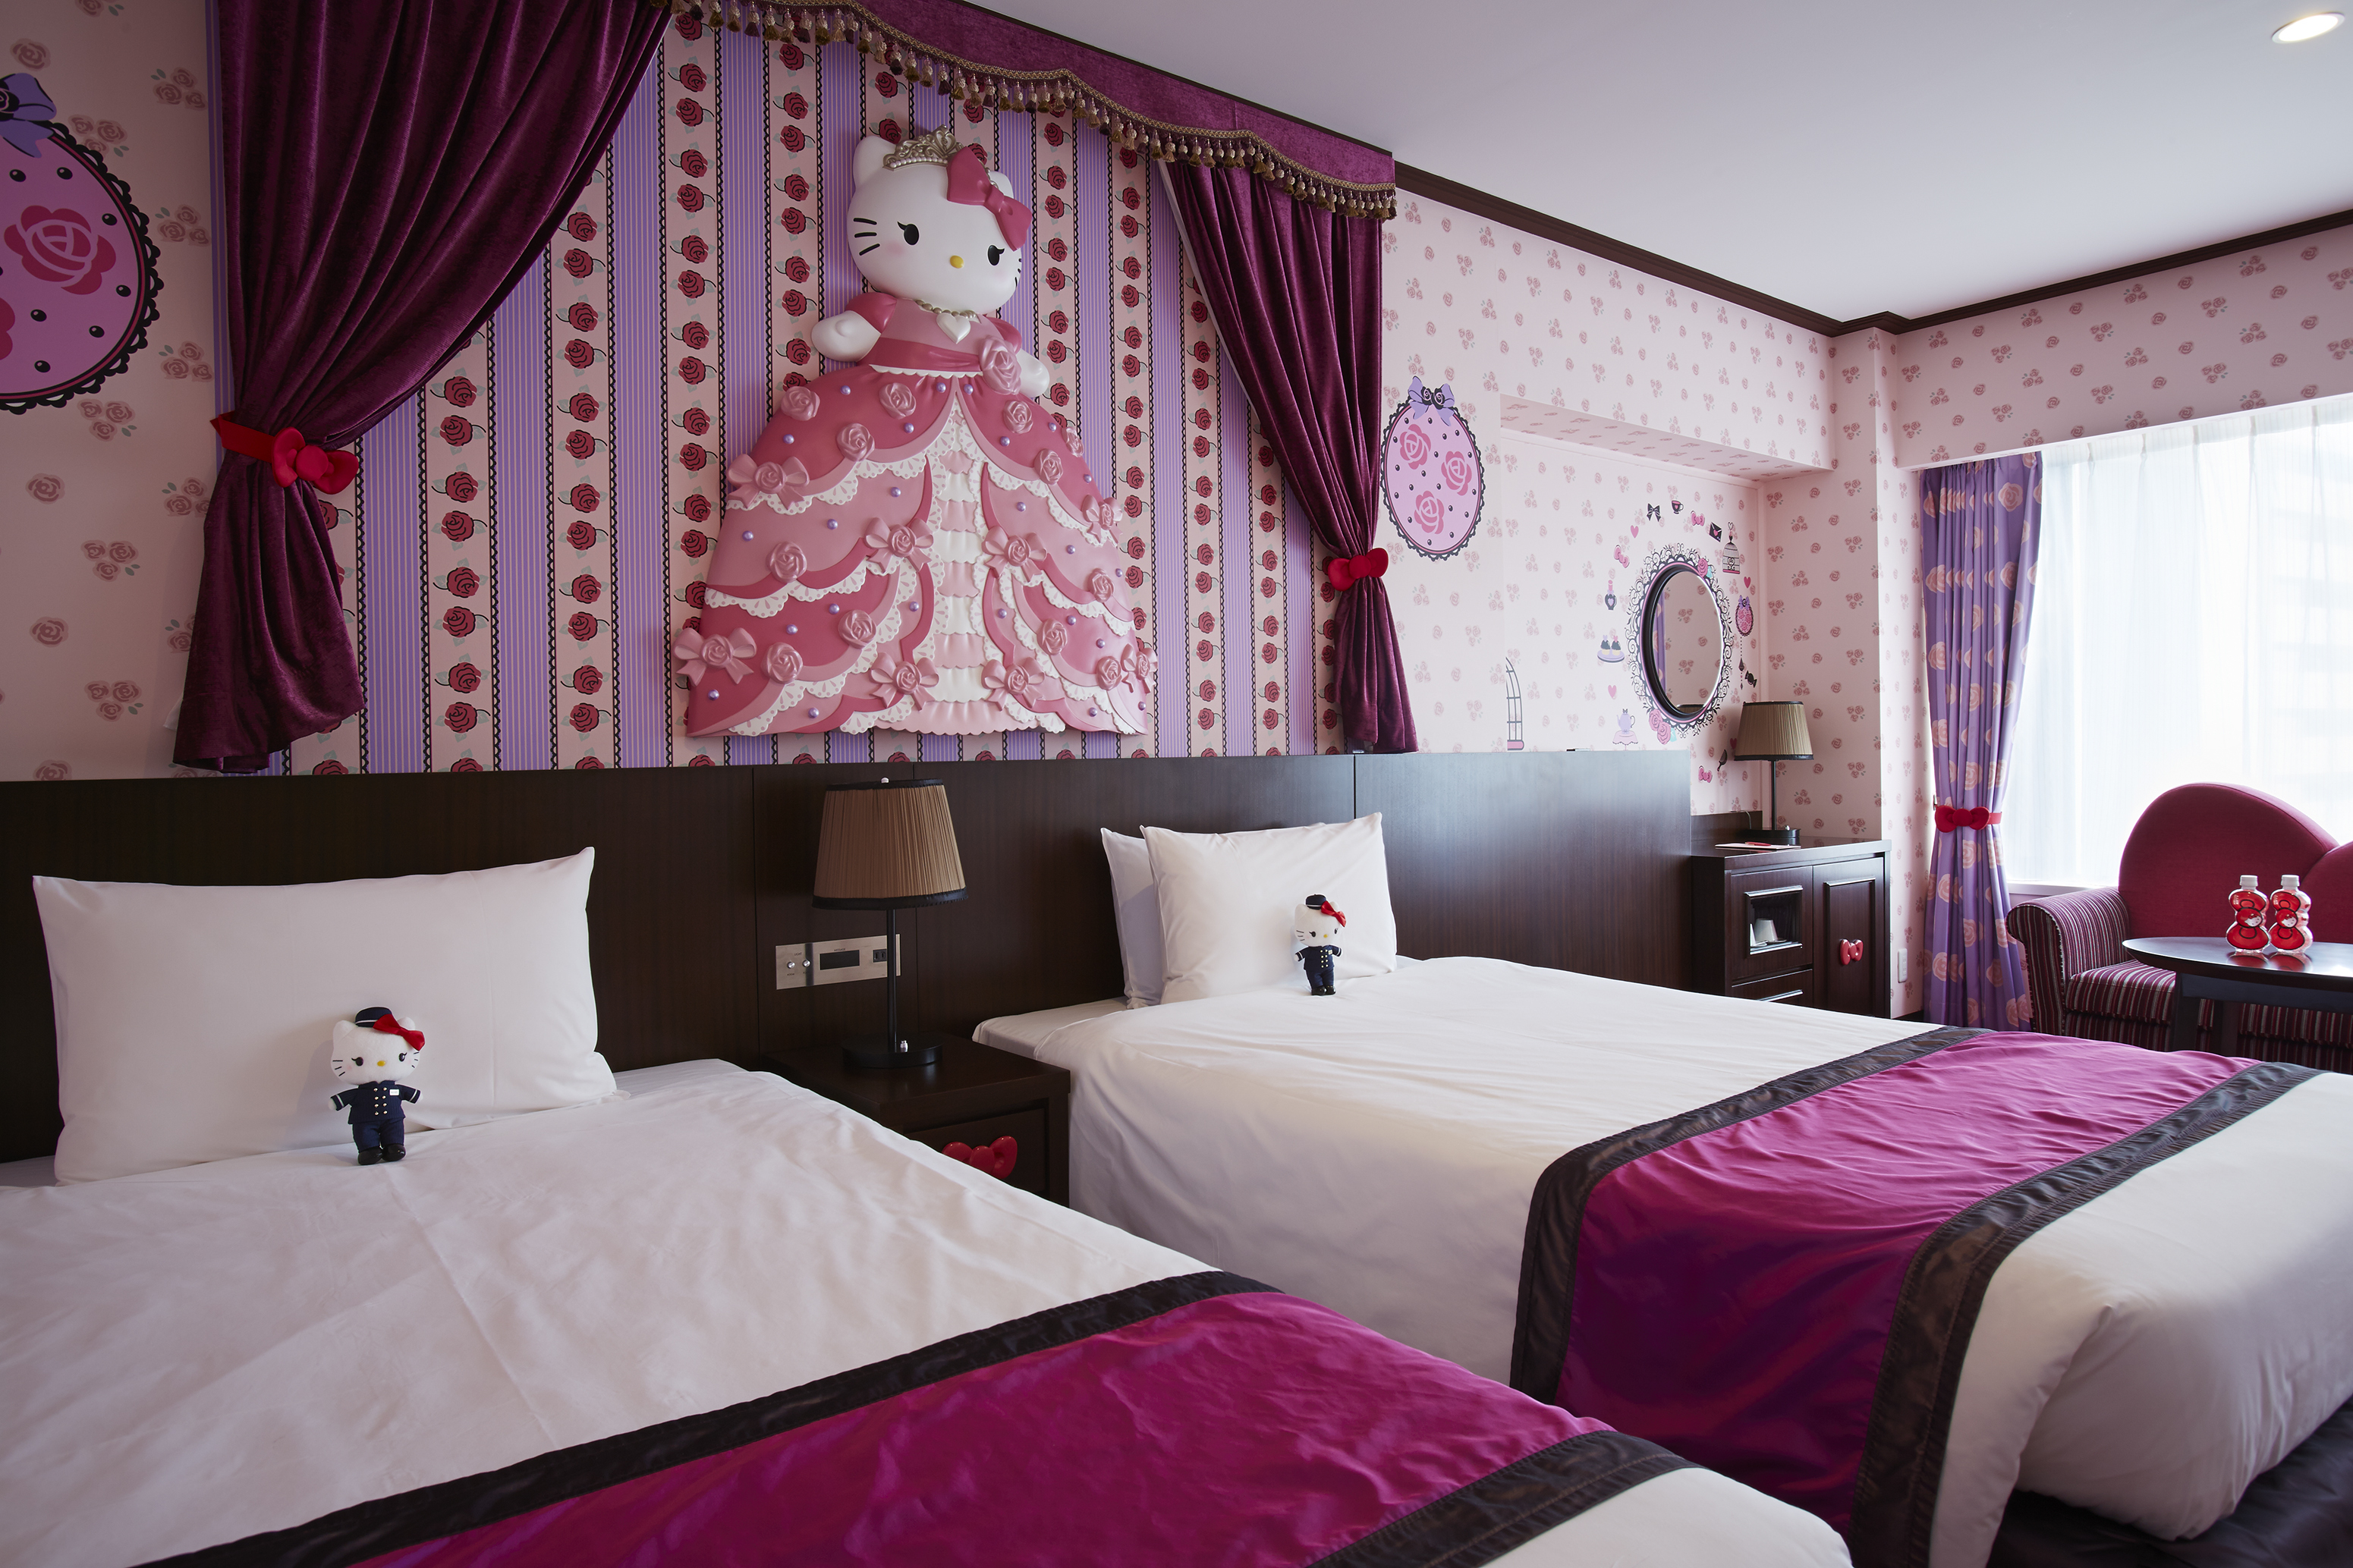 keio plaza hotel tokyos limited time offer for hello kitty room guests special present of hello kitty doll in a bell staffs uniform business wire - Purple Hotel 2016